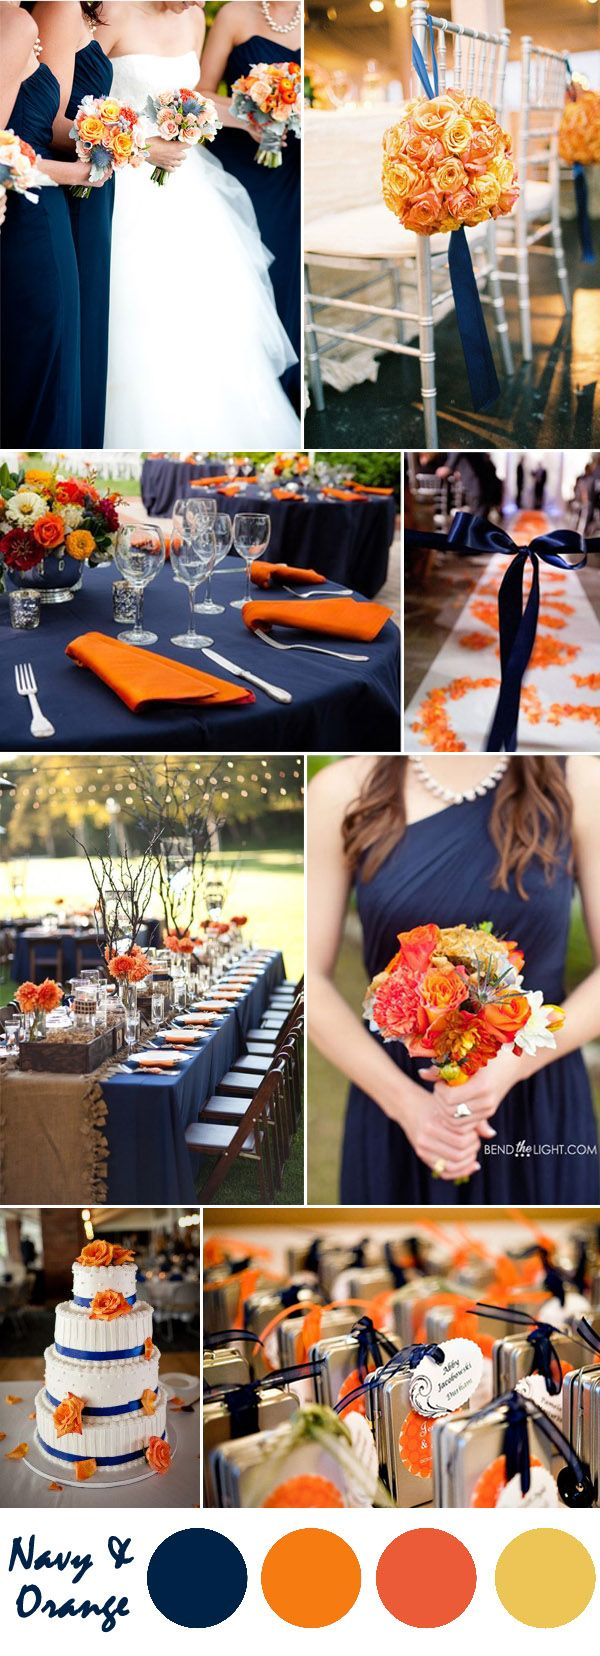 25+ best ideas about Blue orange weddings on Pinterest | Fall ...